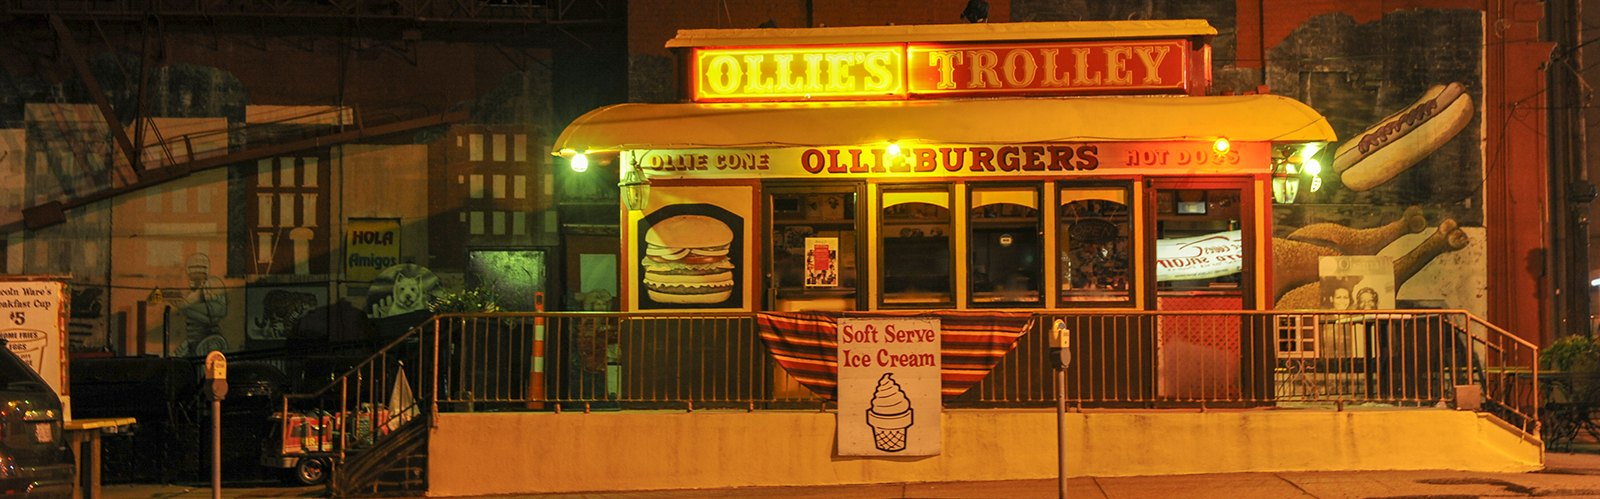 Nighttime at Ollie's Trolley at the corner of Liberty Street and Central Avenue